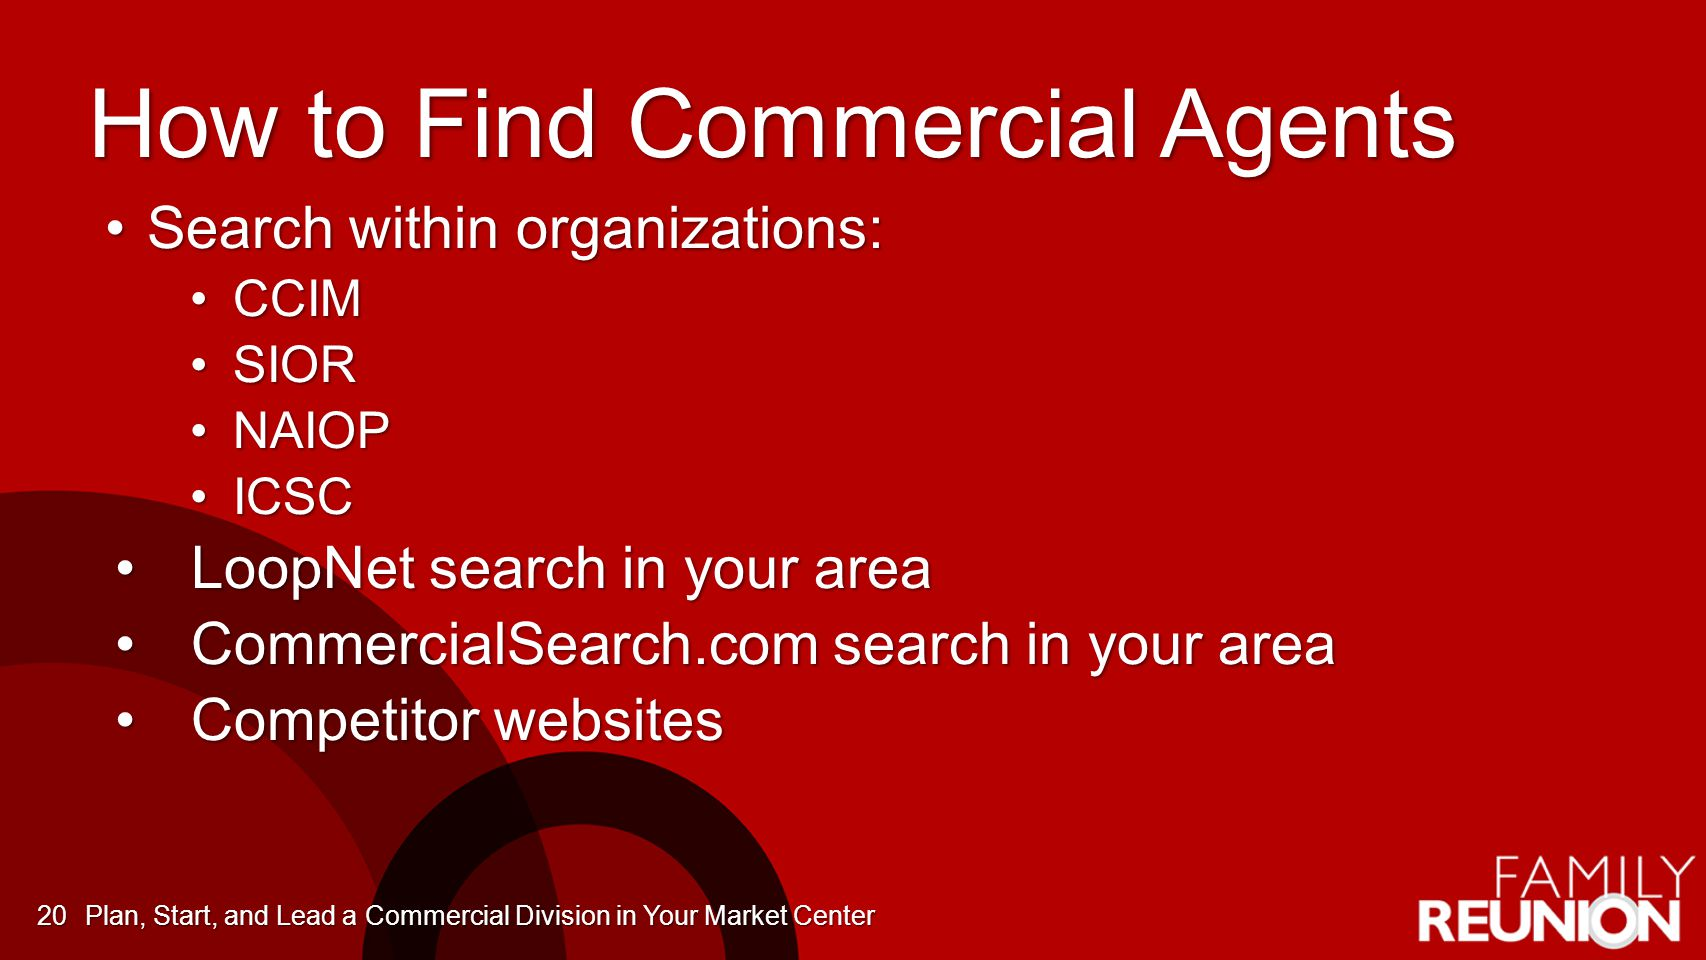 How to Find Commercial Agents Search within organizations:Search within organizations: CCIMCCIM SIORSIOR NAIOPNAIOP ICSCICSC LoopNet search in your areaLoopNet search in your area CommercialSearch.com search in your areaCommercialSearch.com search in your area Competitor websitesCompetitor websites Plan, Start, and Lead a Commercial Division in Your Market Center20